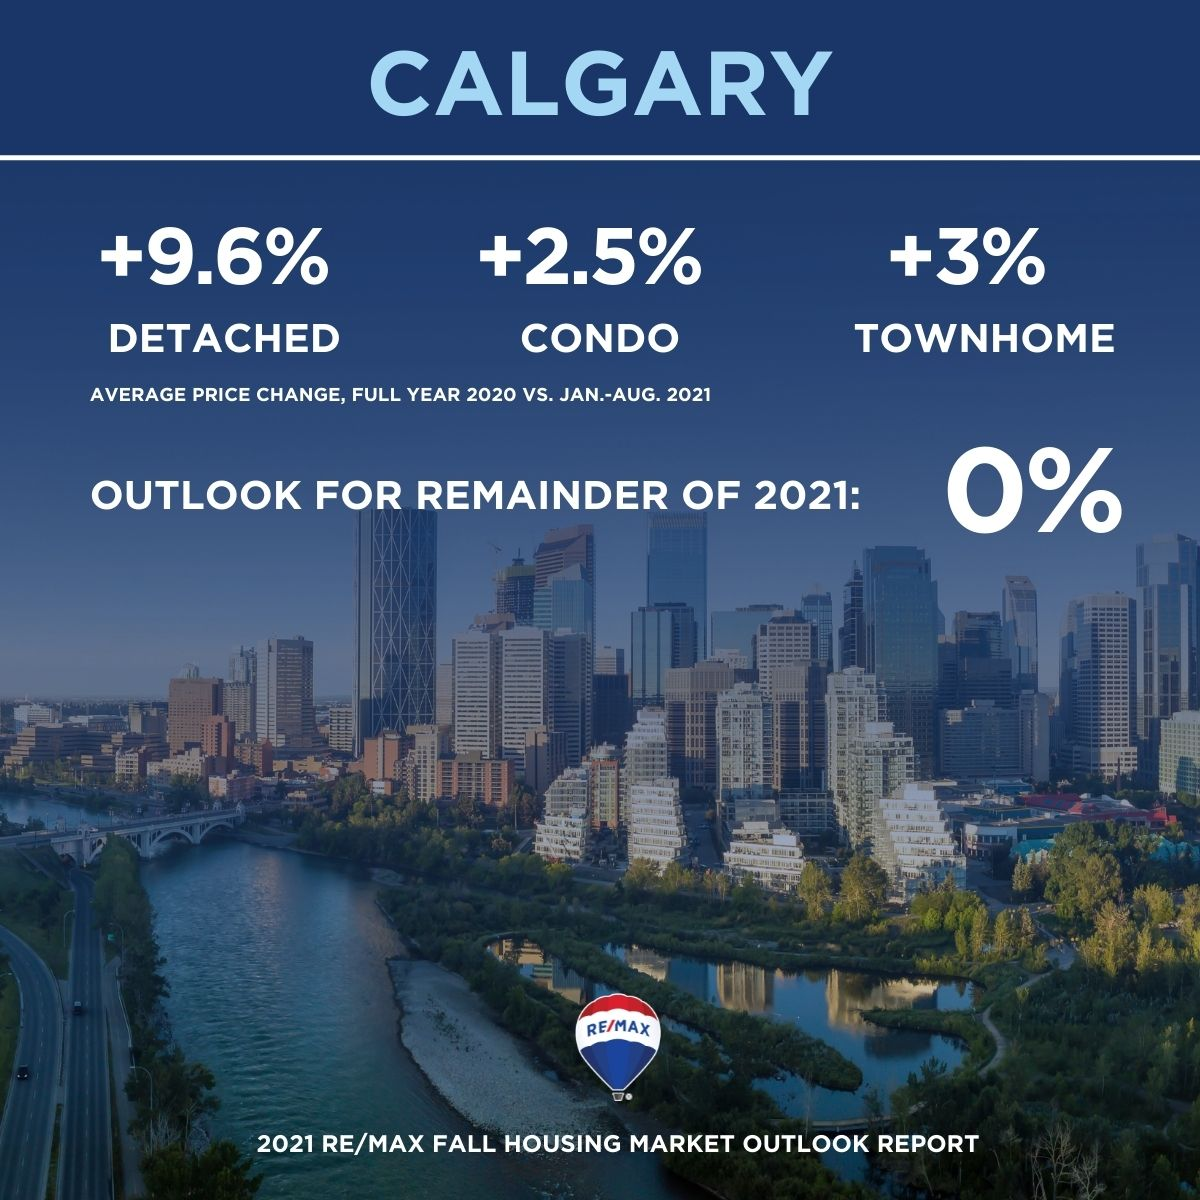 Canadian Remax Calgary Housing Market Statistics Fall 2021 Outlook